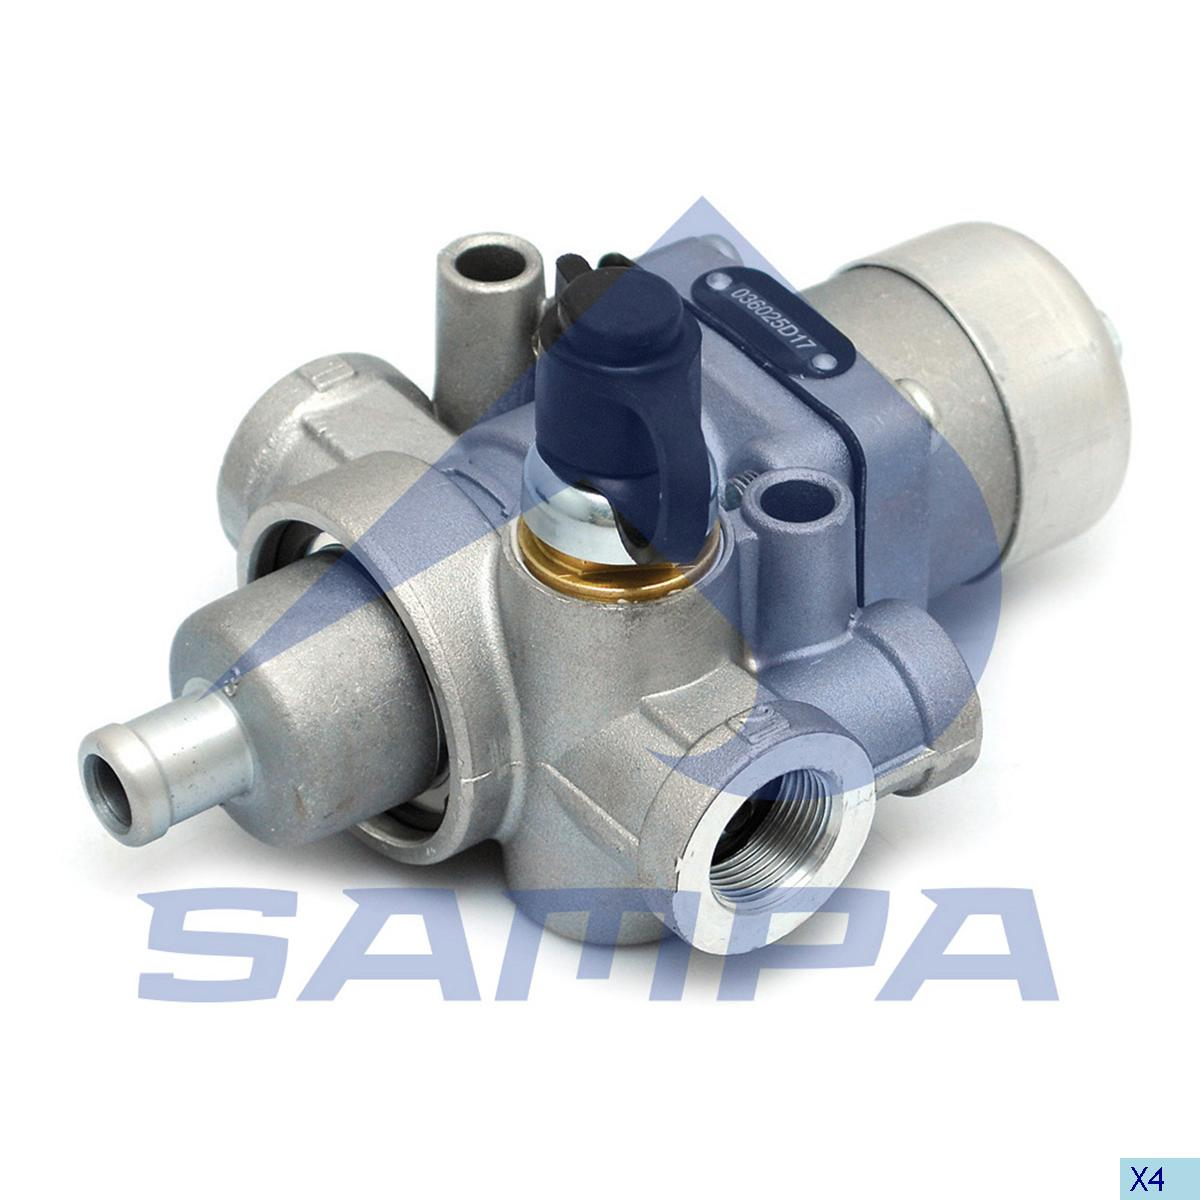 Drain Valve, Daf, Compressed Air System